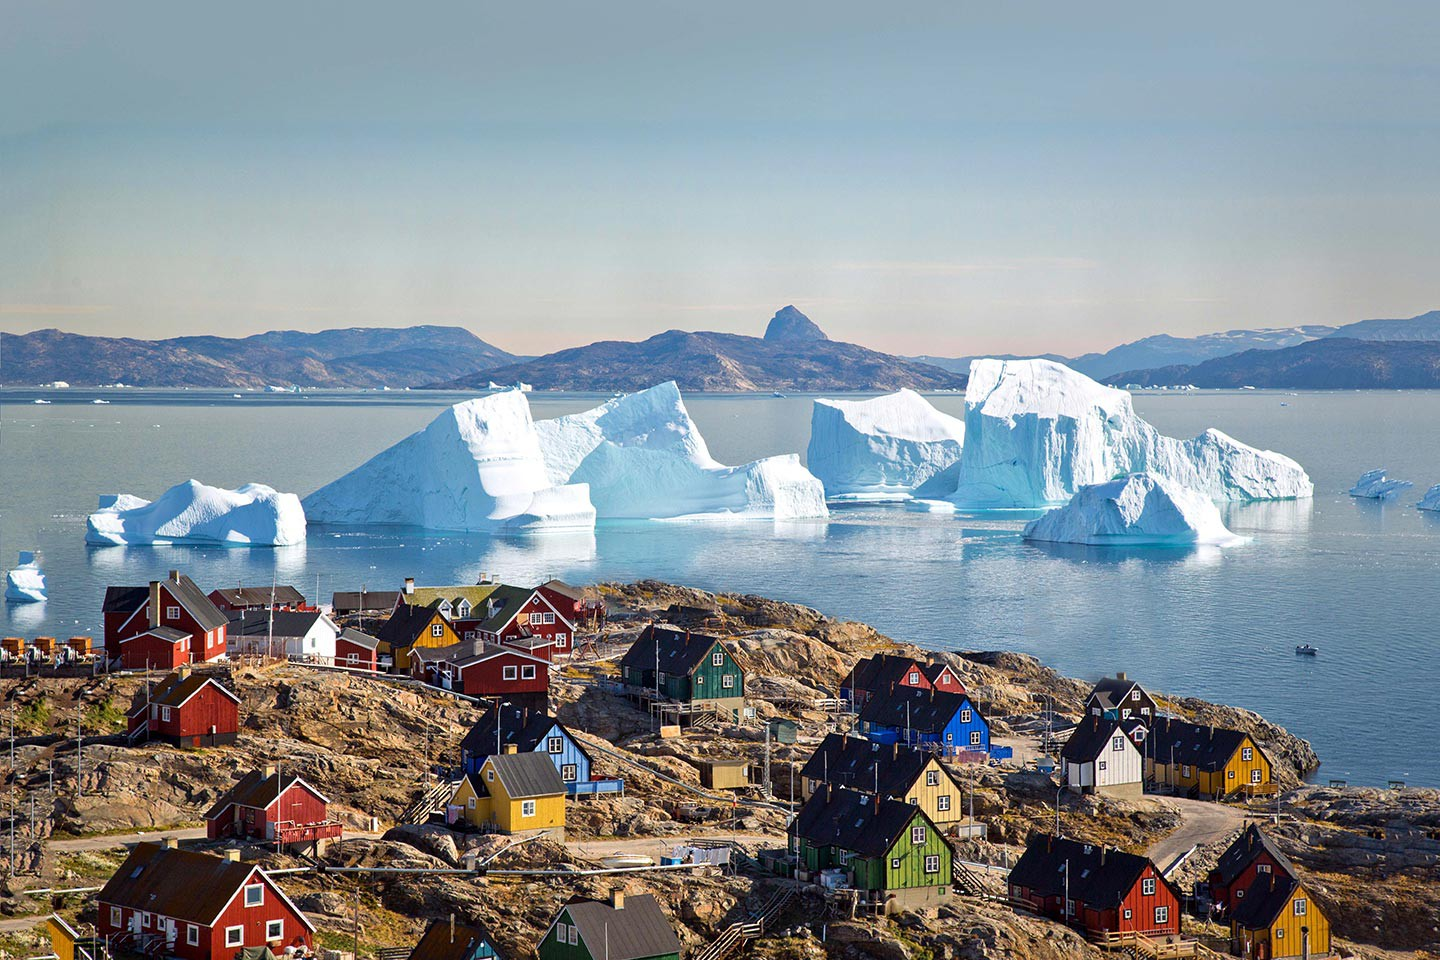 Afbeelding van Reis Zuid Groenland Quark Expeditions Essential Greenland Greenland Arctic 2014 802 Acacia Johnson